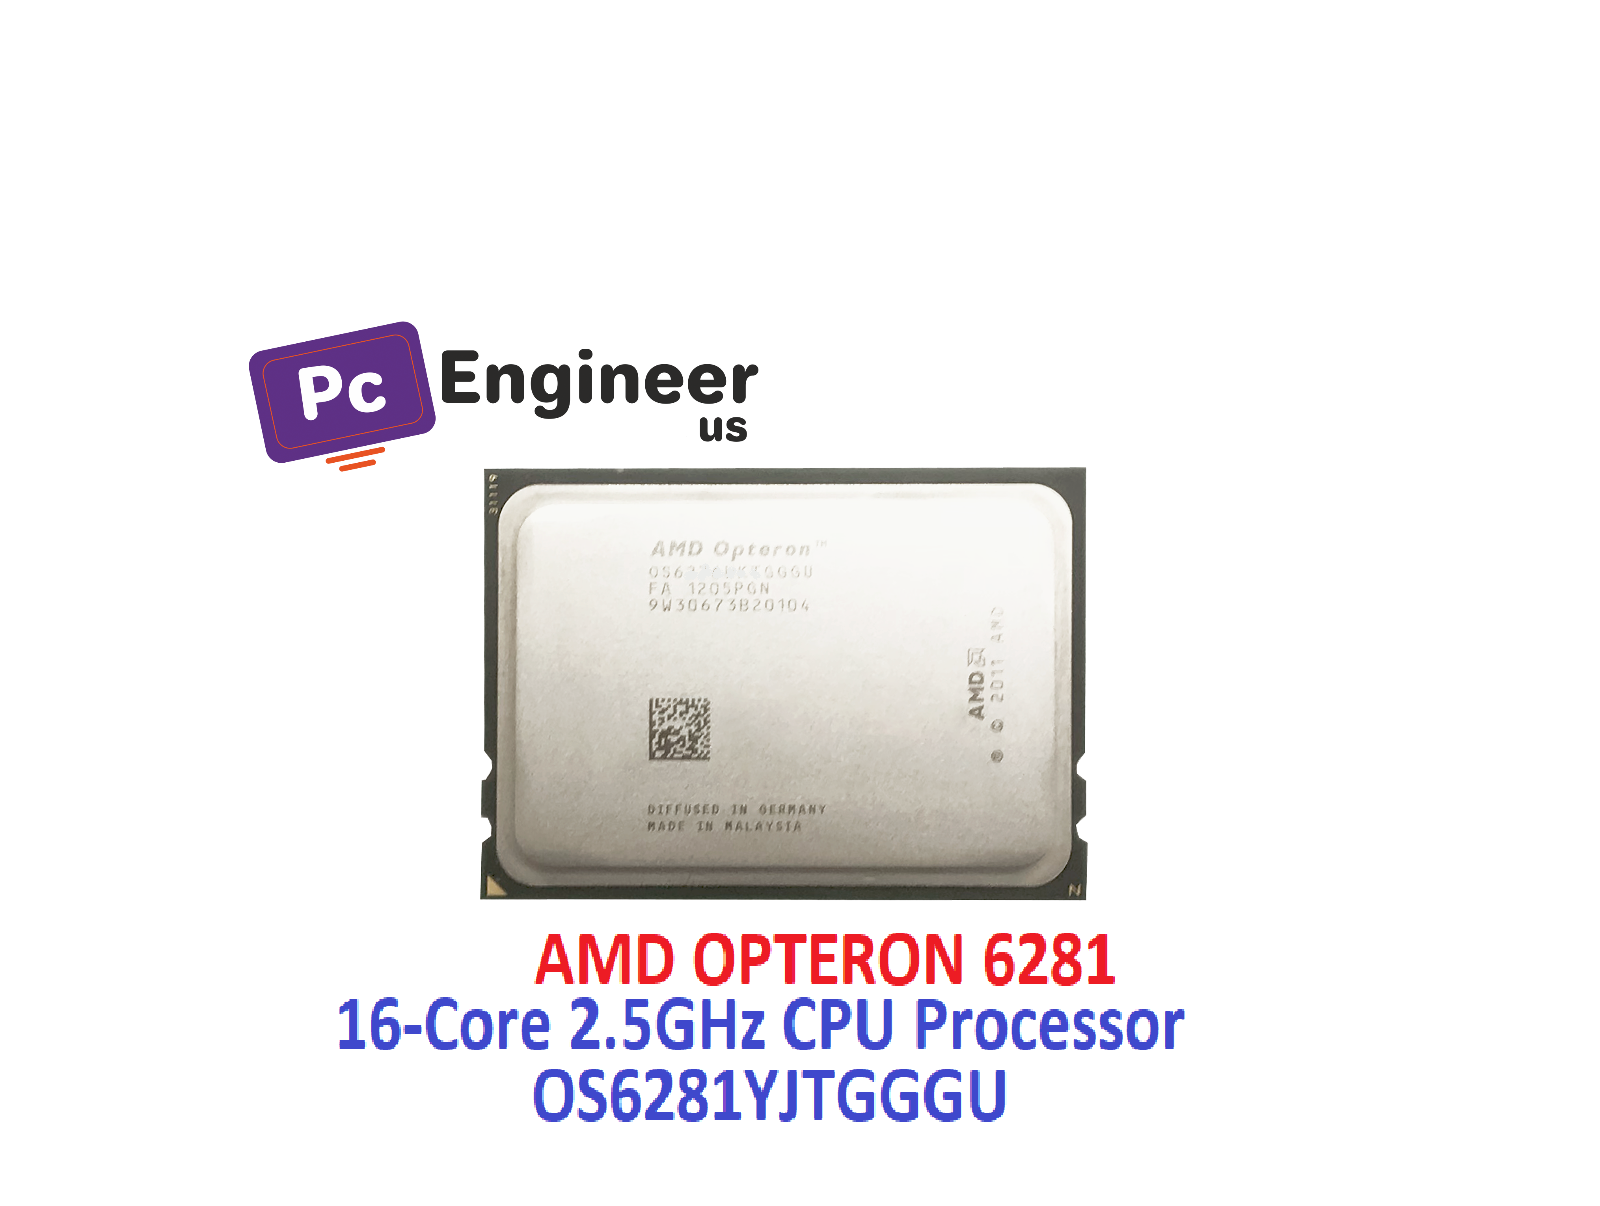 Amd Opteron 6281 Os6281yjtgggu 16 Core 2 5ghz Cpu Processor For Sale Online Ebay